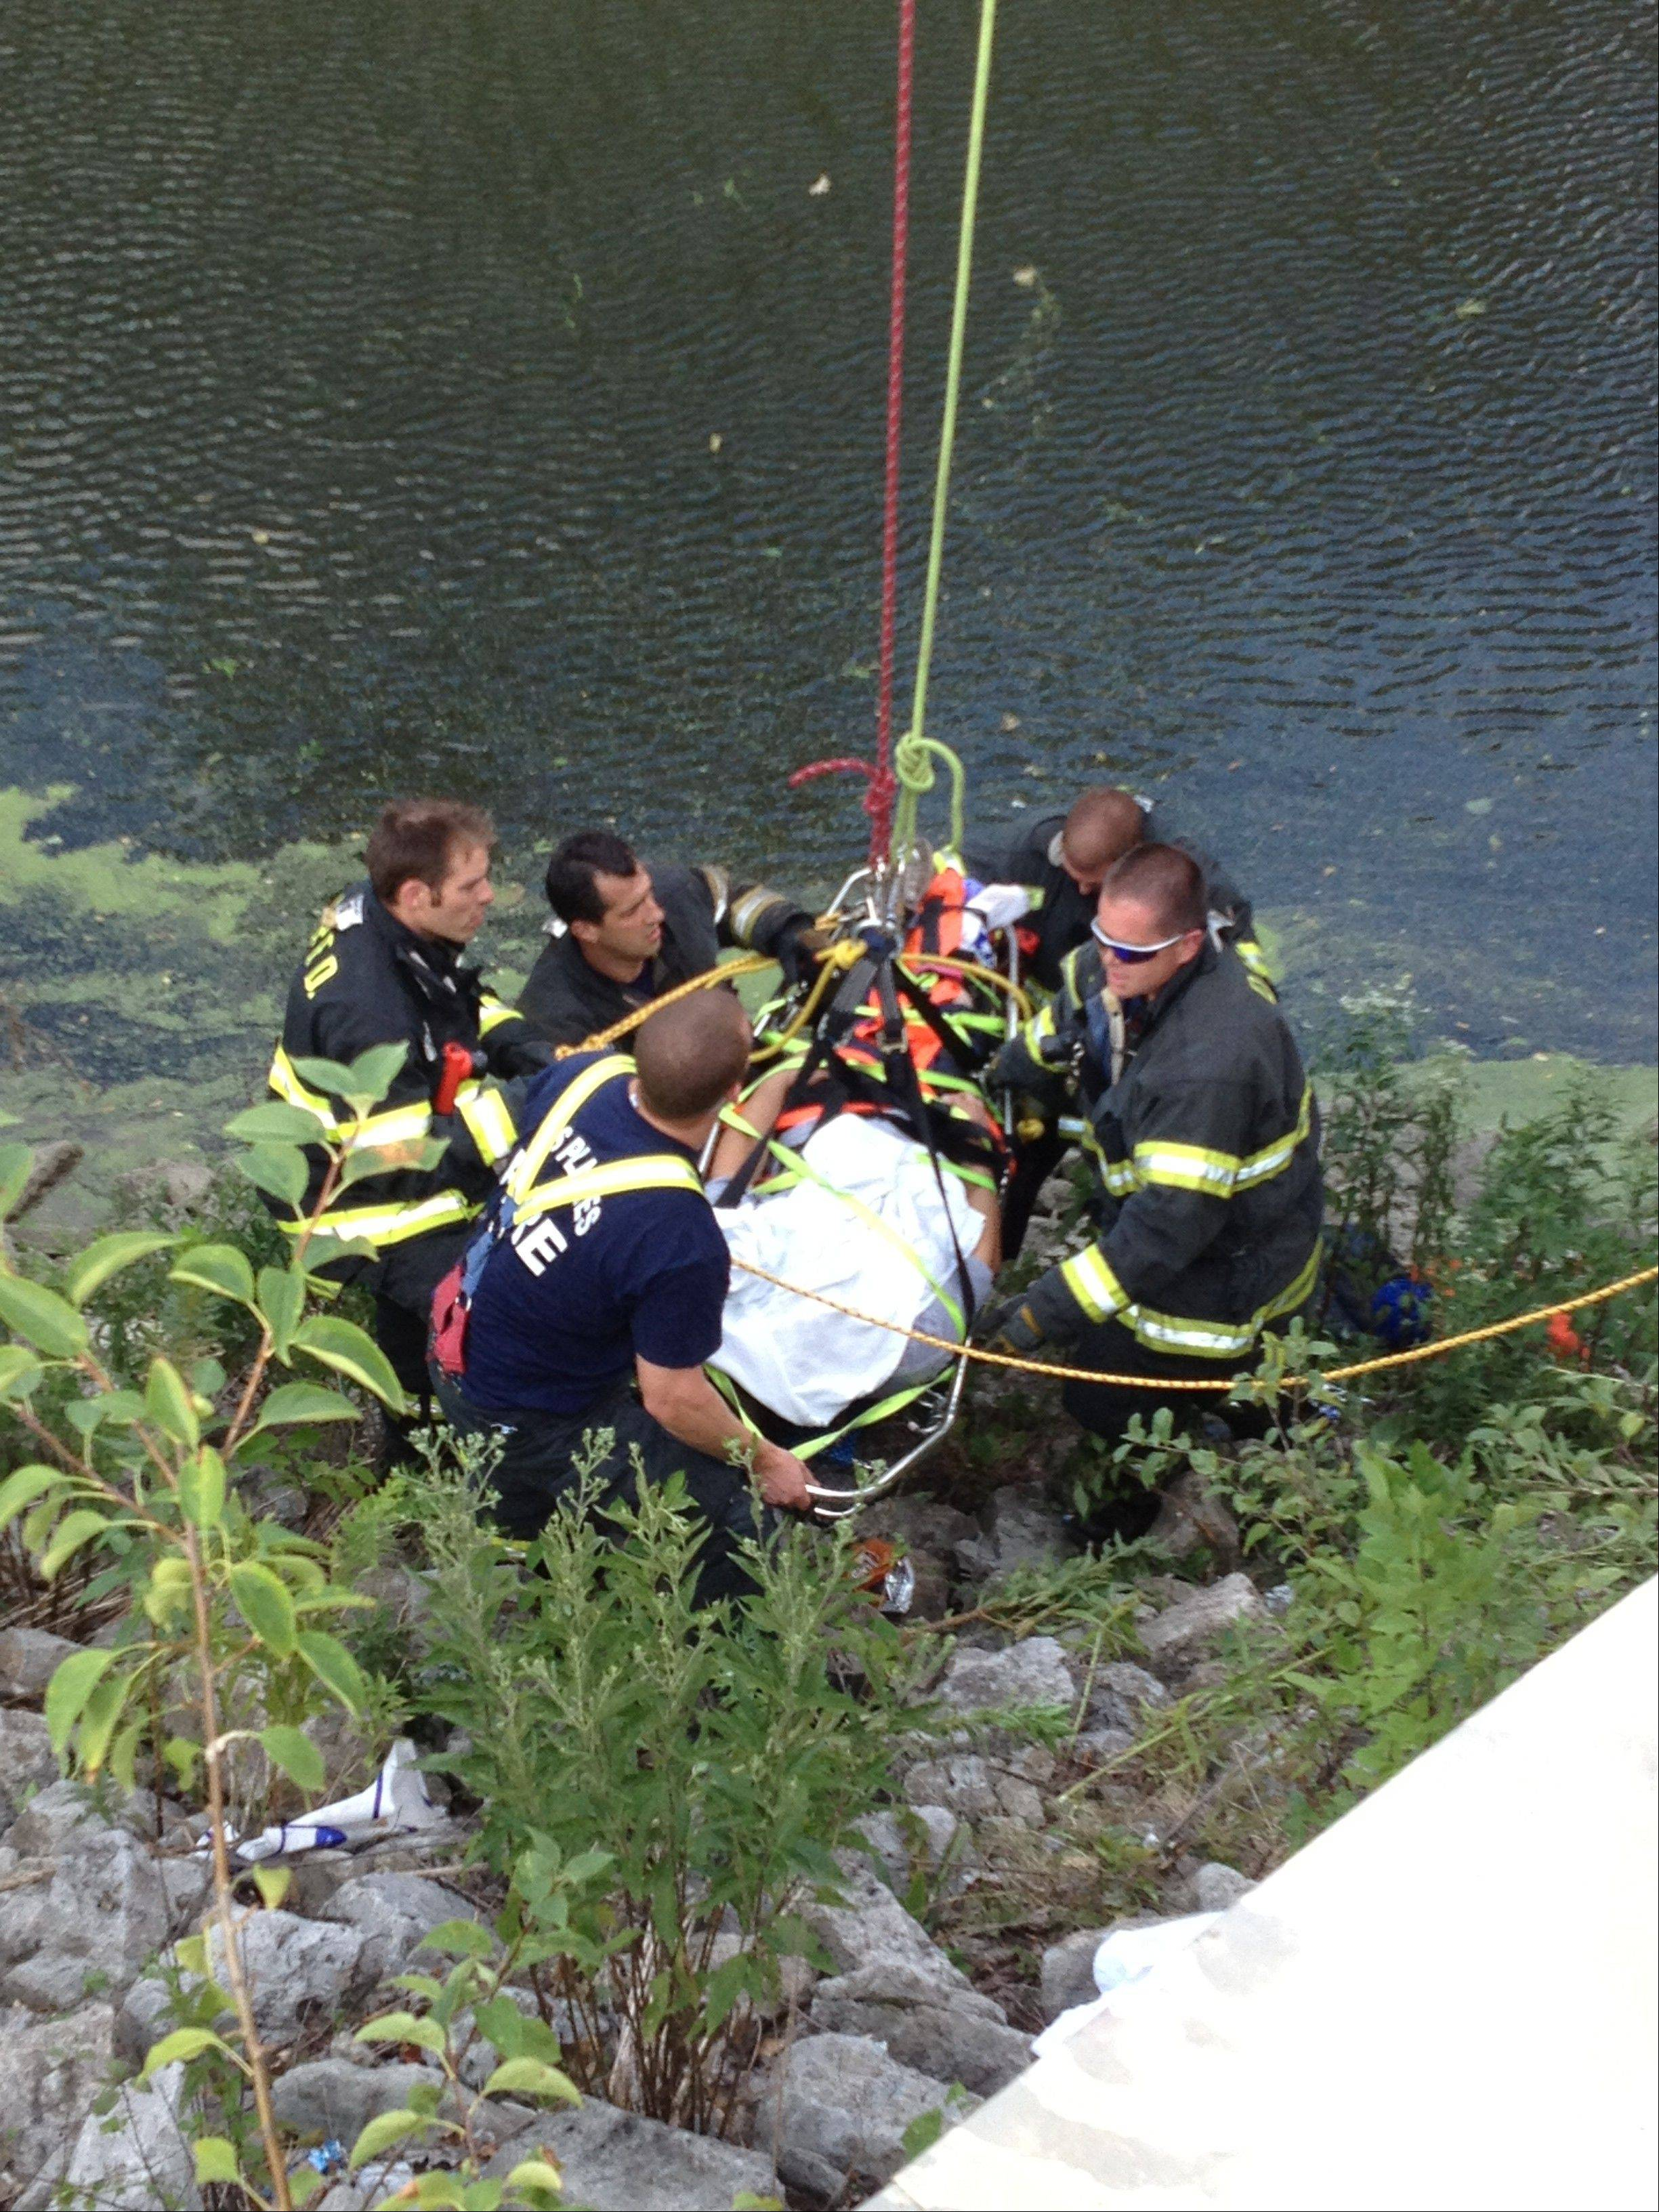 Des Plaines firefighter/paramedics finish packaging a patient in a basket stretcher to prepare him to be lifted onto the Golf Road bridge from the bank of the Des Plaines River. The patient's face was covered with a towel to protect him from a swarm of bees.